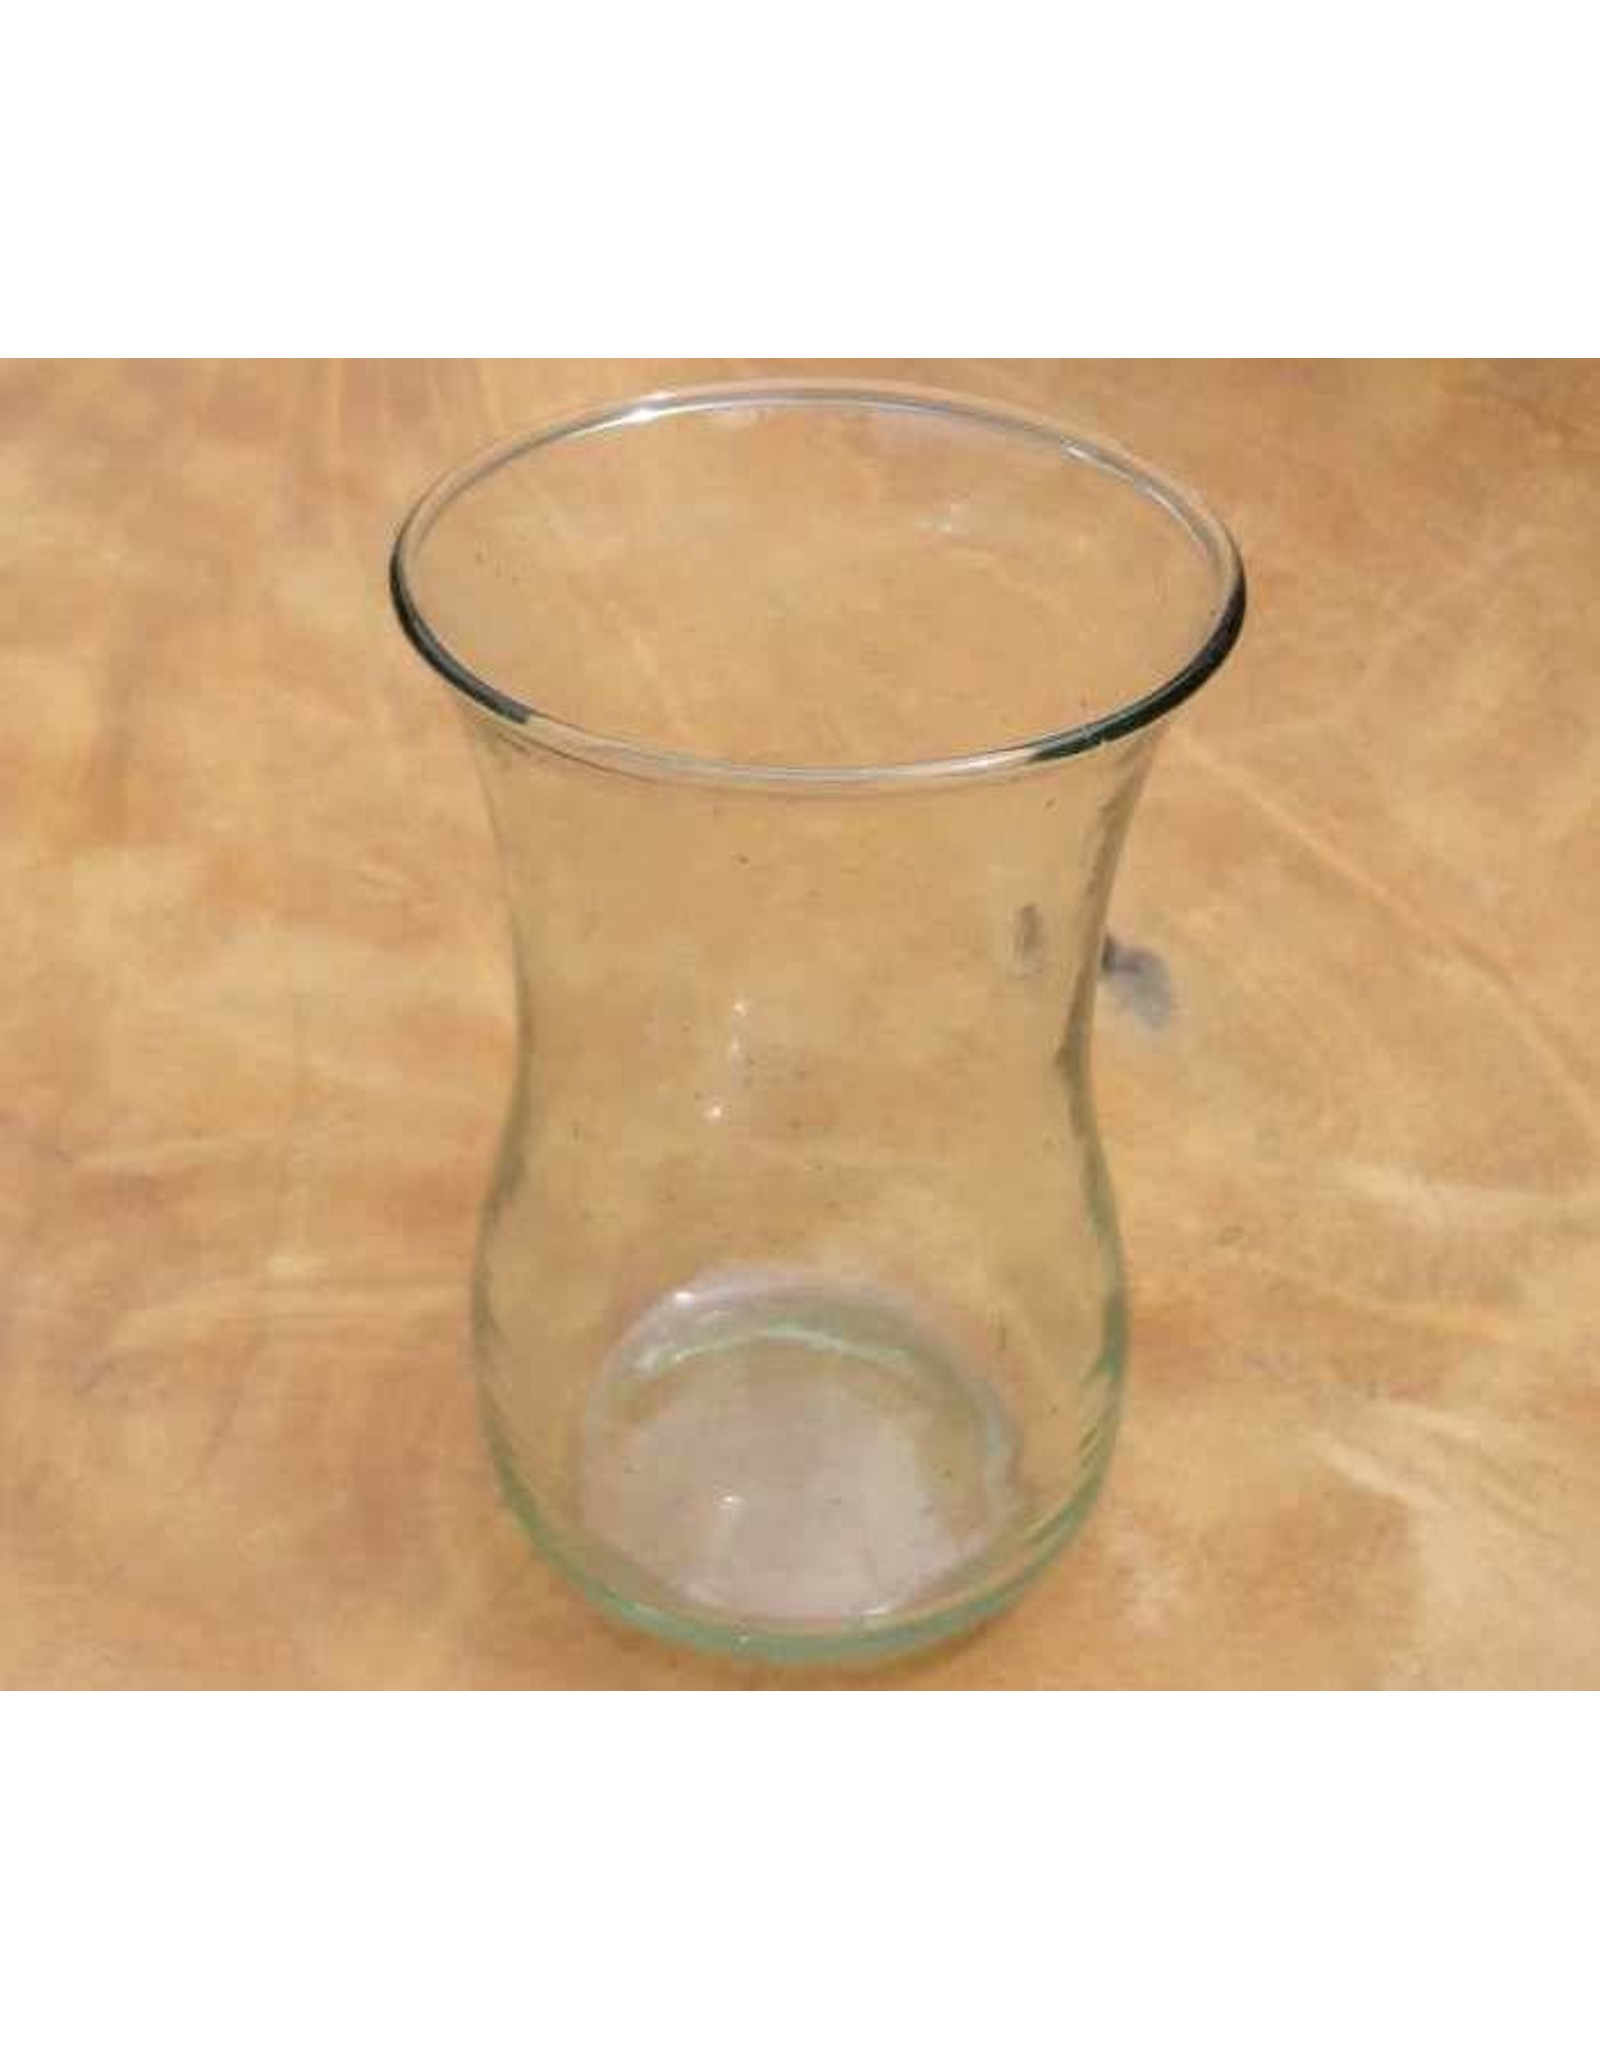 Teaglass recycled